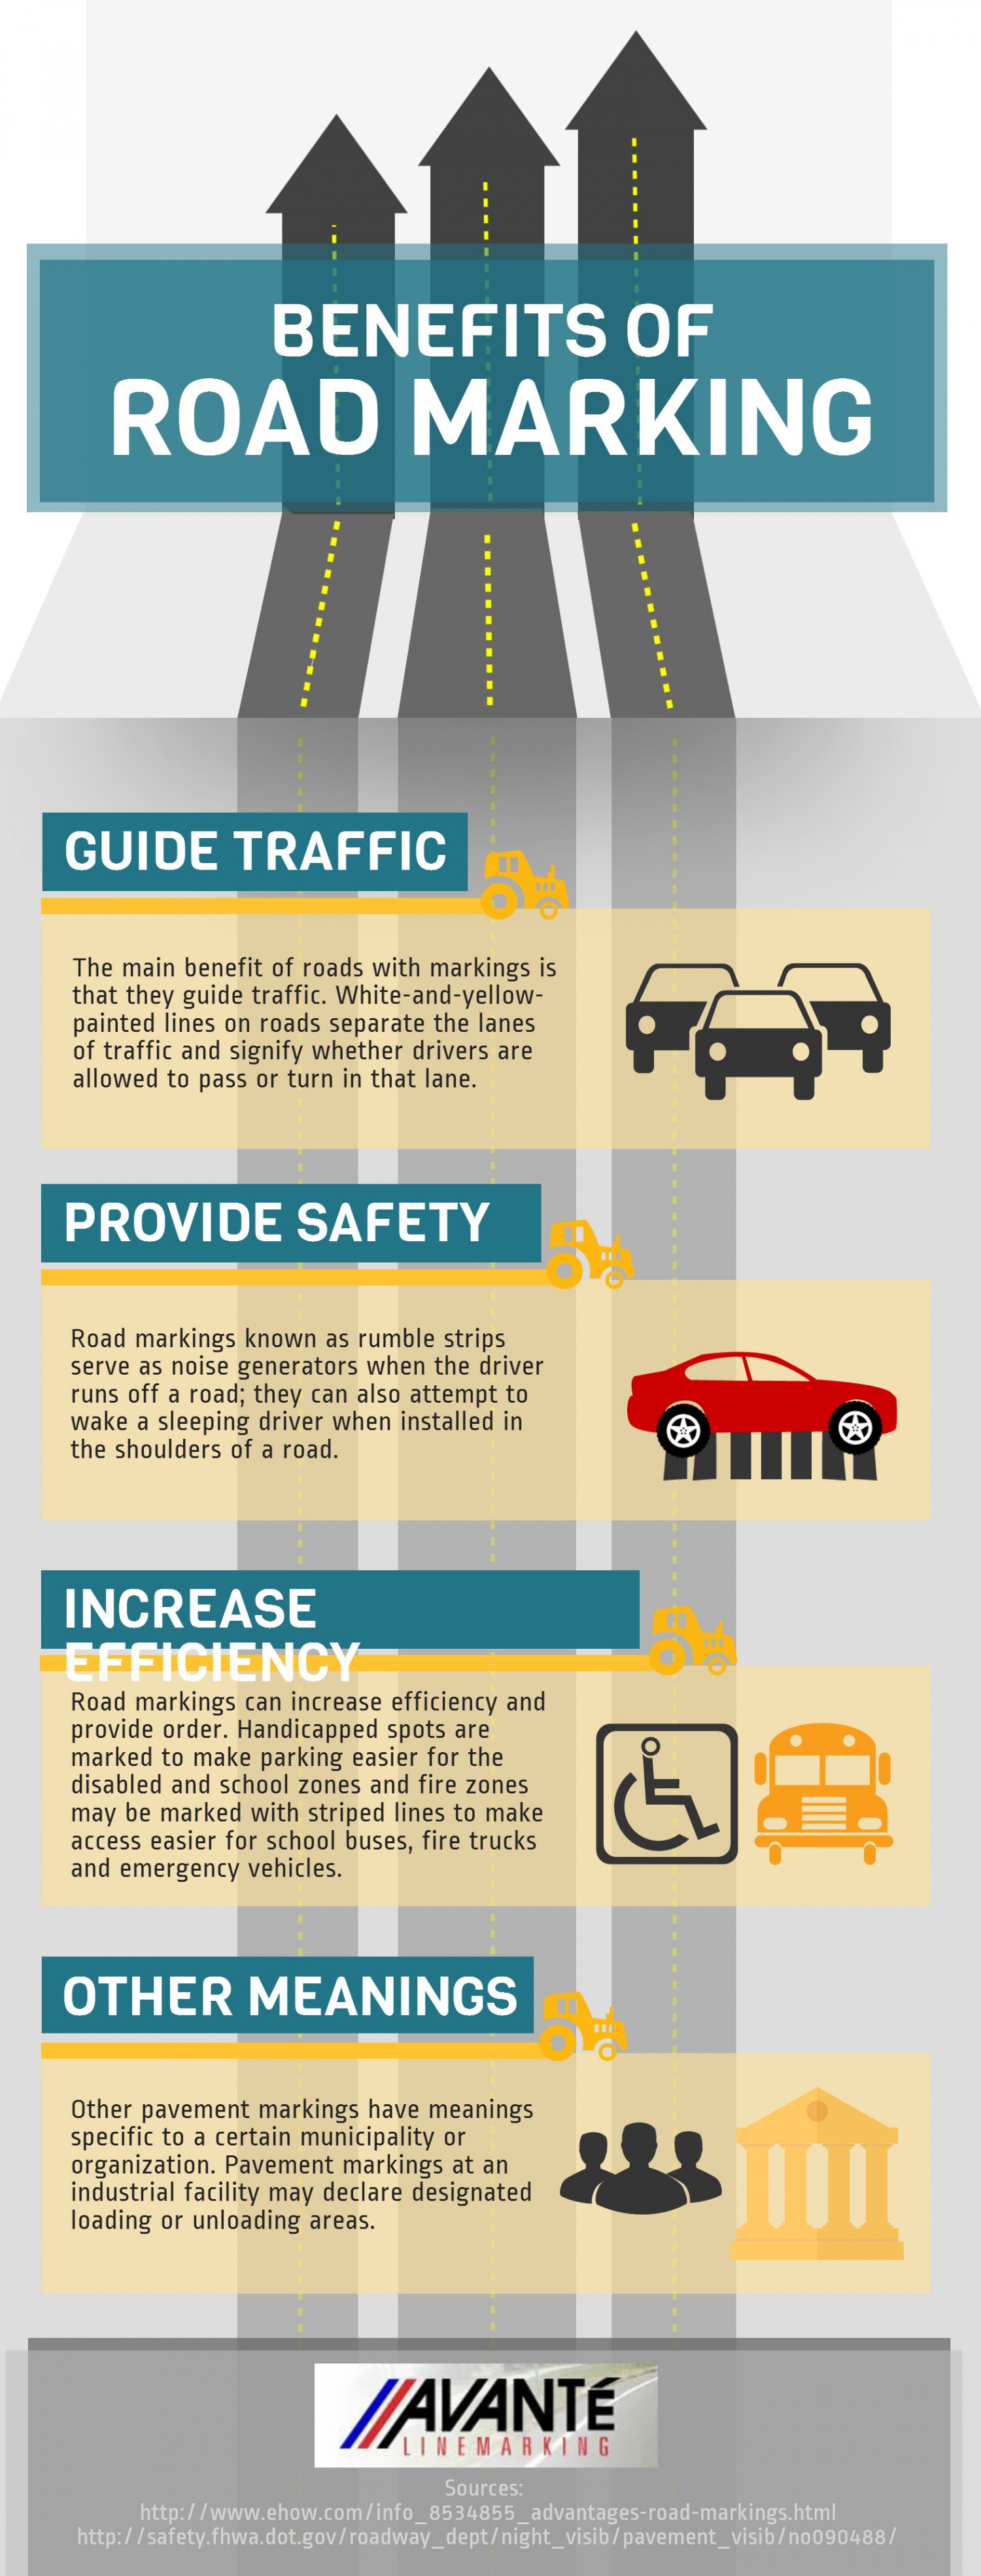 Benefits of Road Markings Infographic